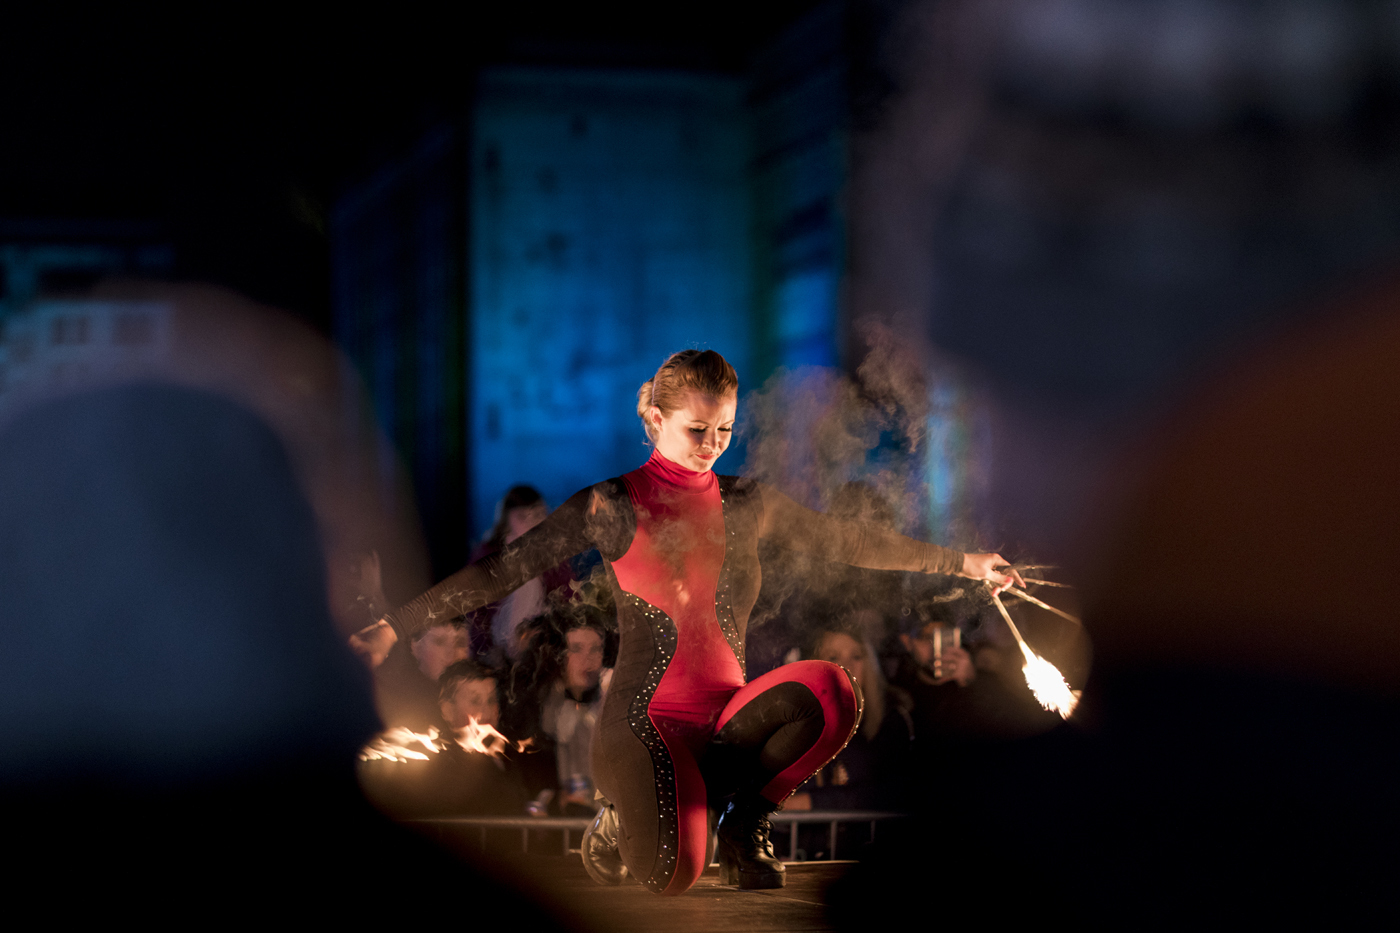 Dancer crouching down twirling sticks with fire on either end